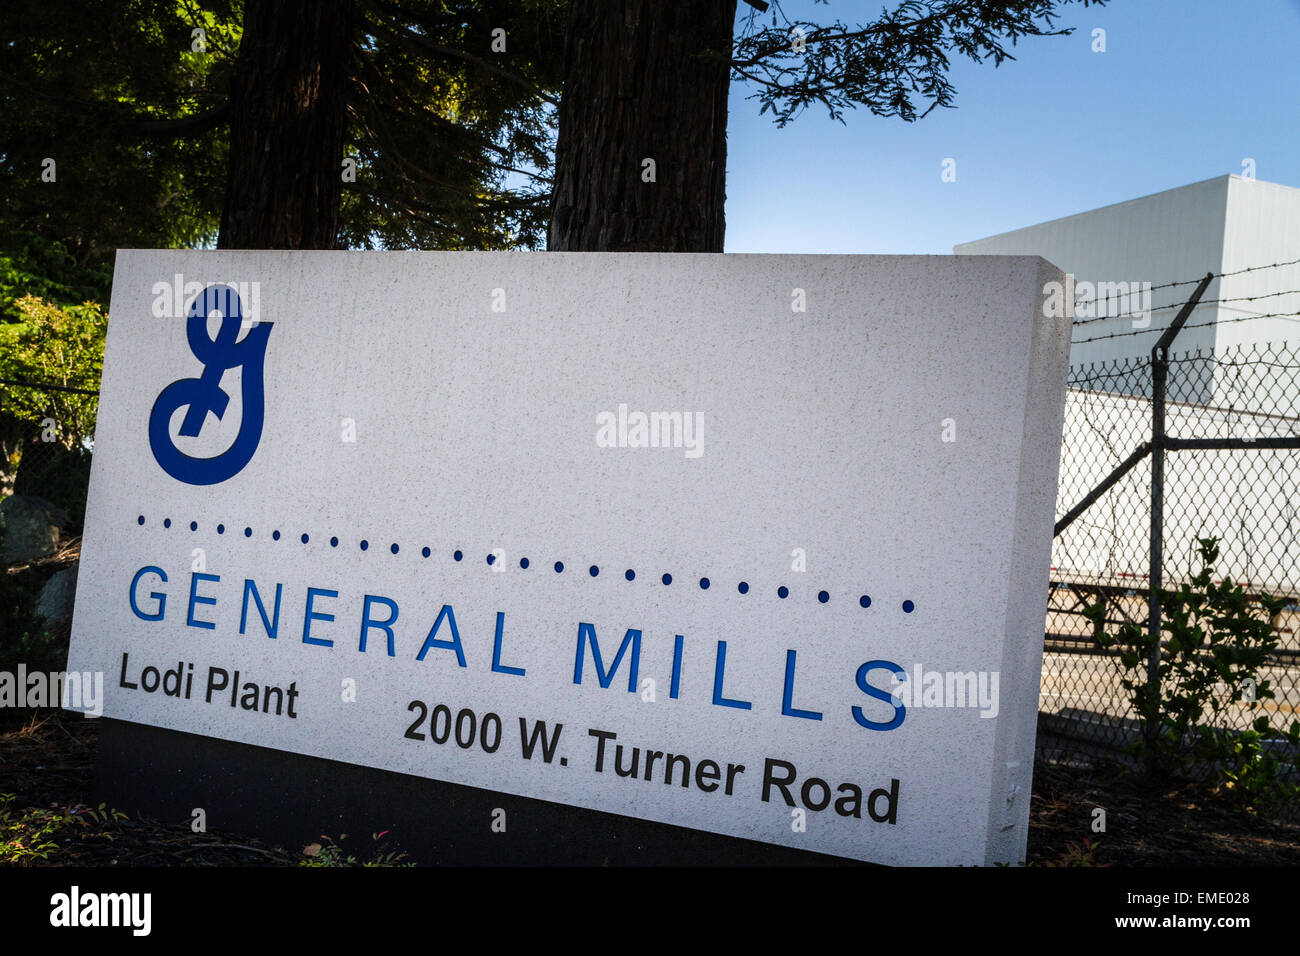 The General Mills factory in Lodi California which smells like Cheerios when you are driving by. - Stock Image